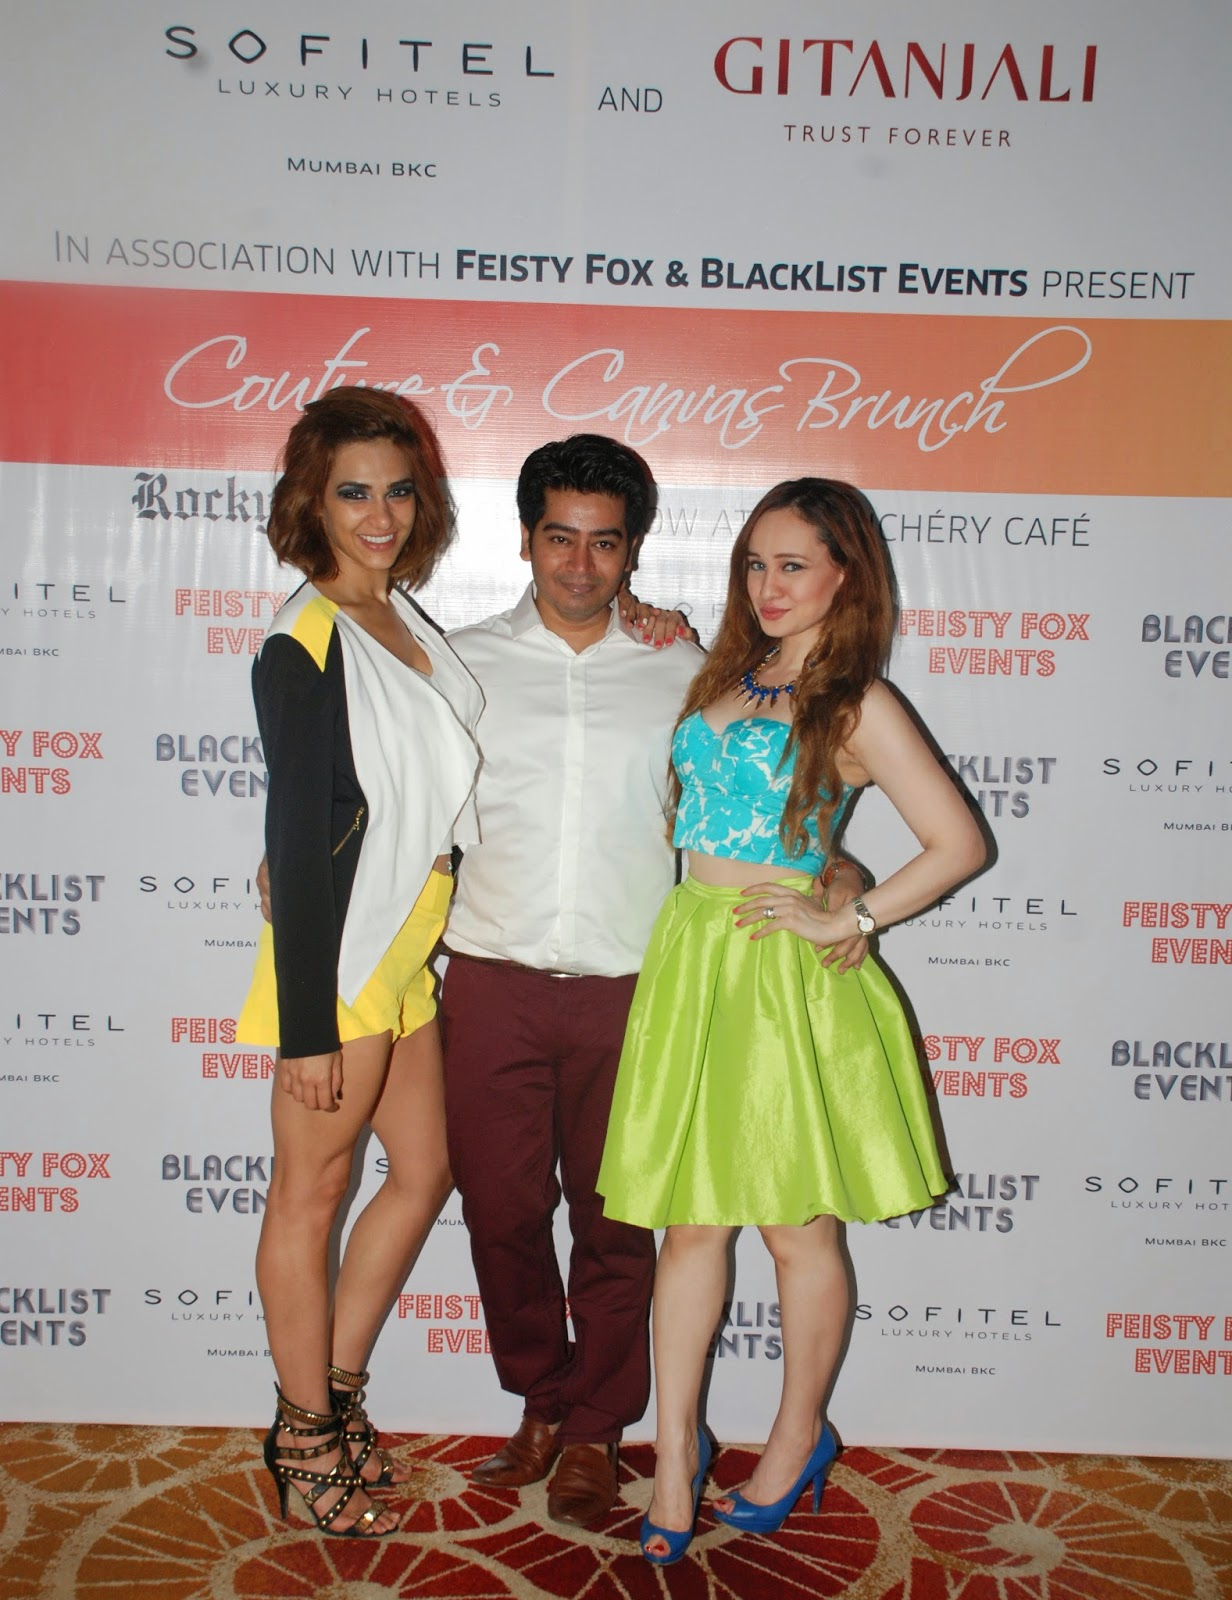 Designer Harsh Gupta, Atiya Goni & Stephanie Timmins at Couture & Canvas Brunch at Sofitel,BKC